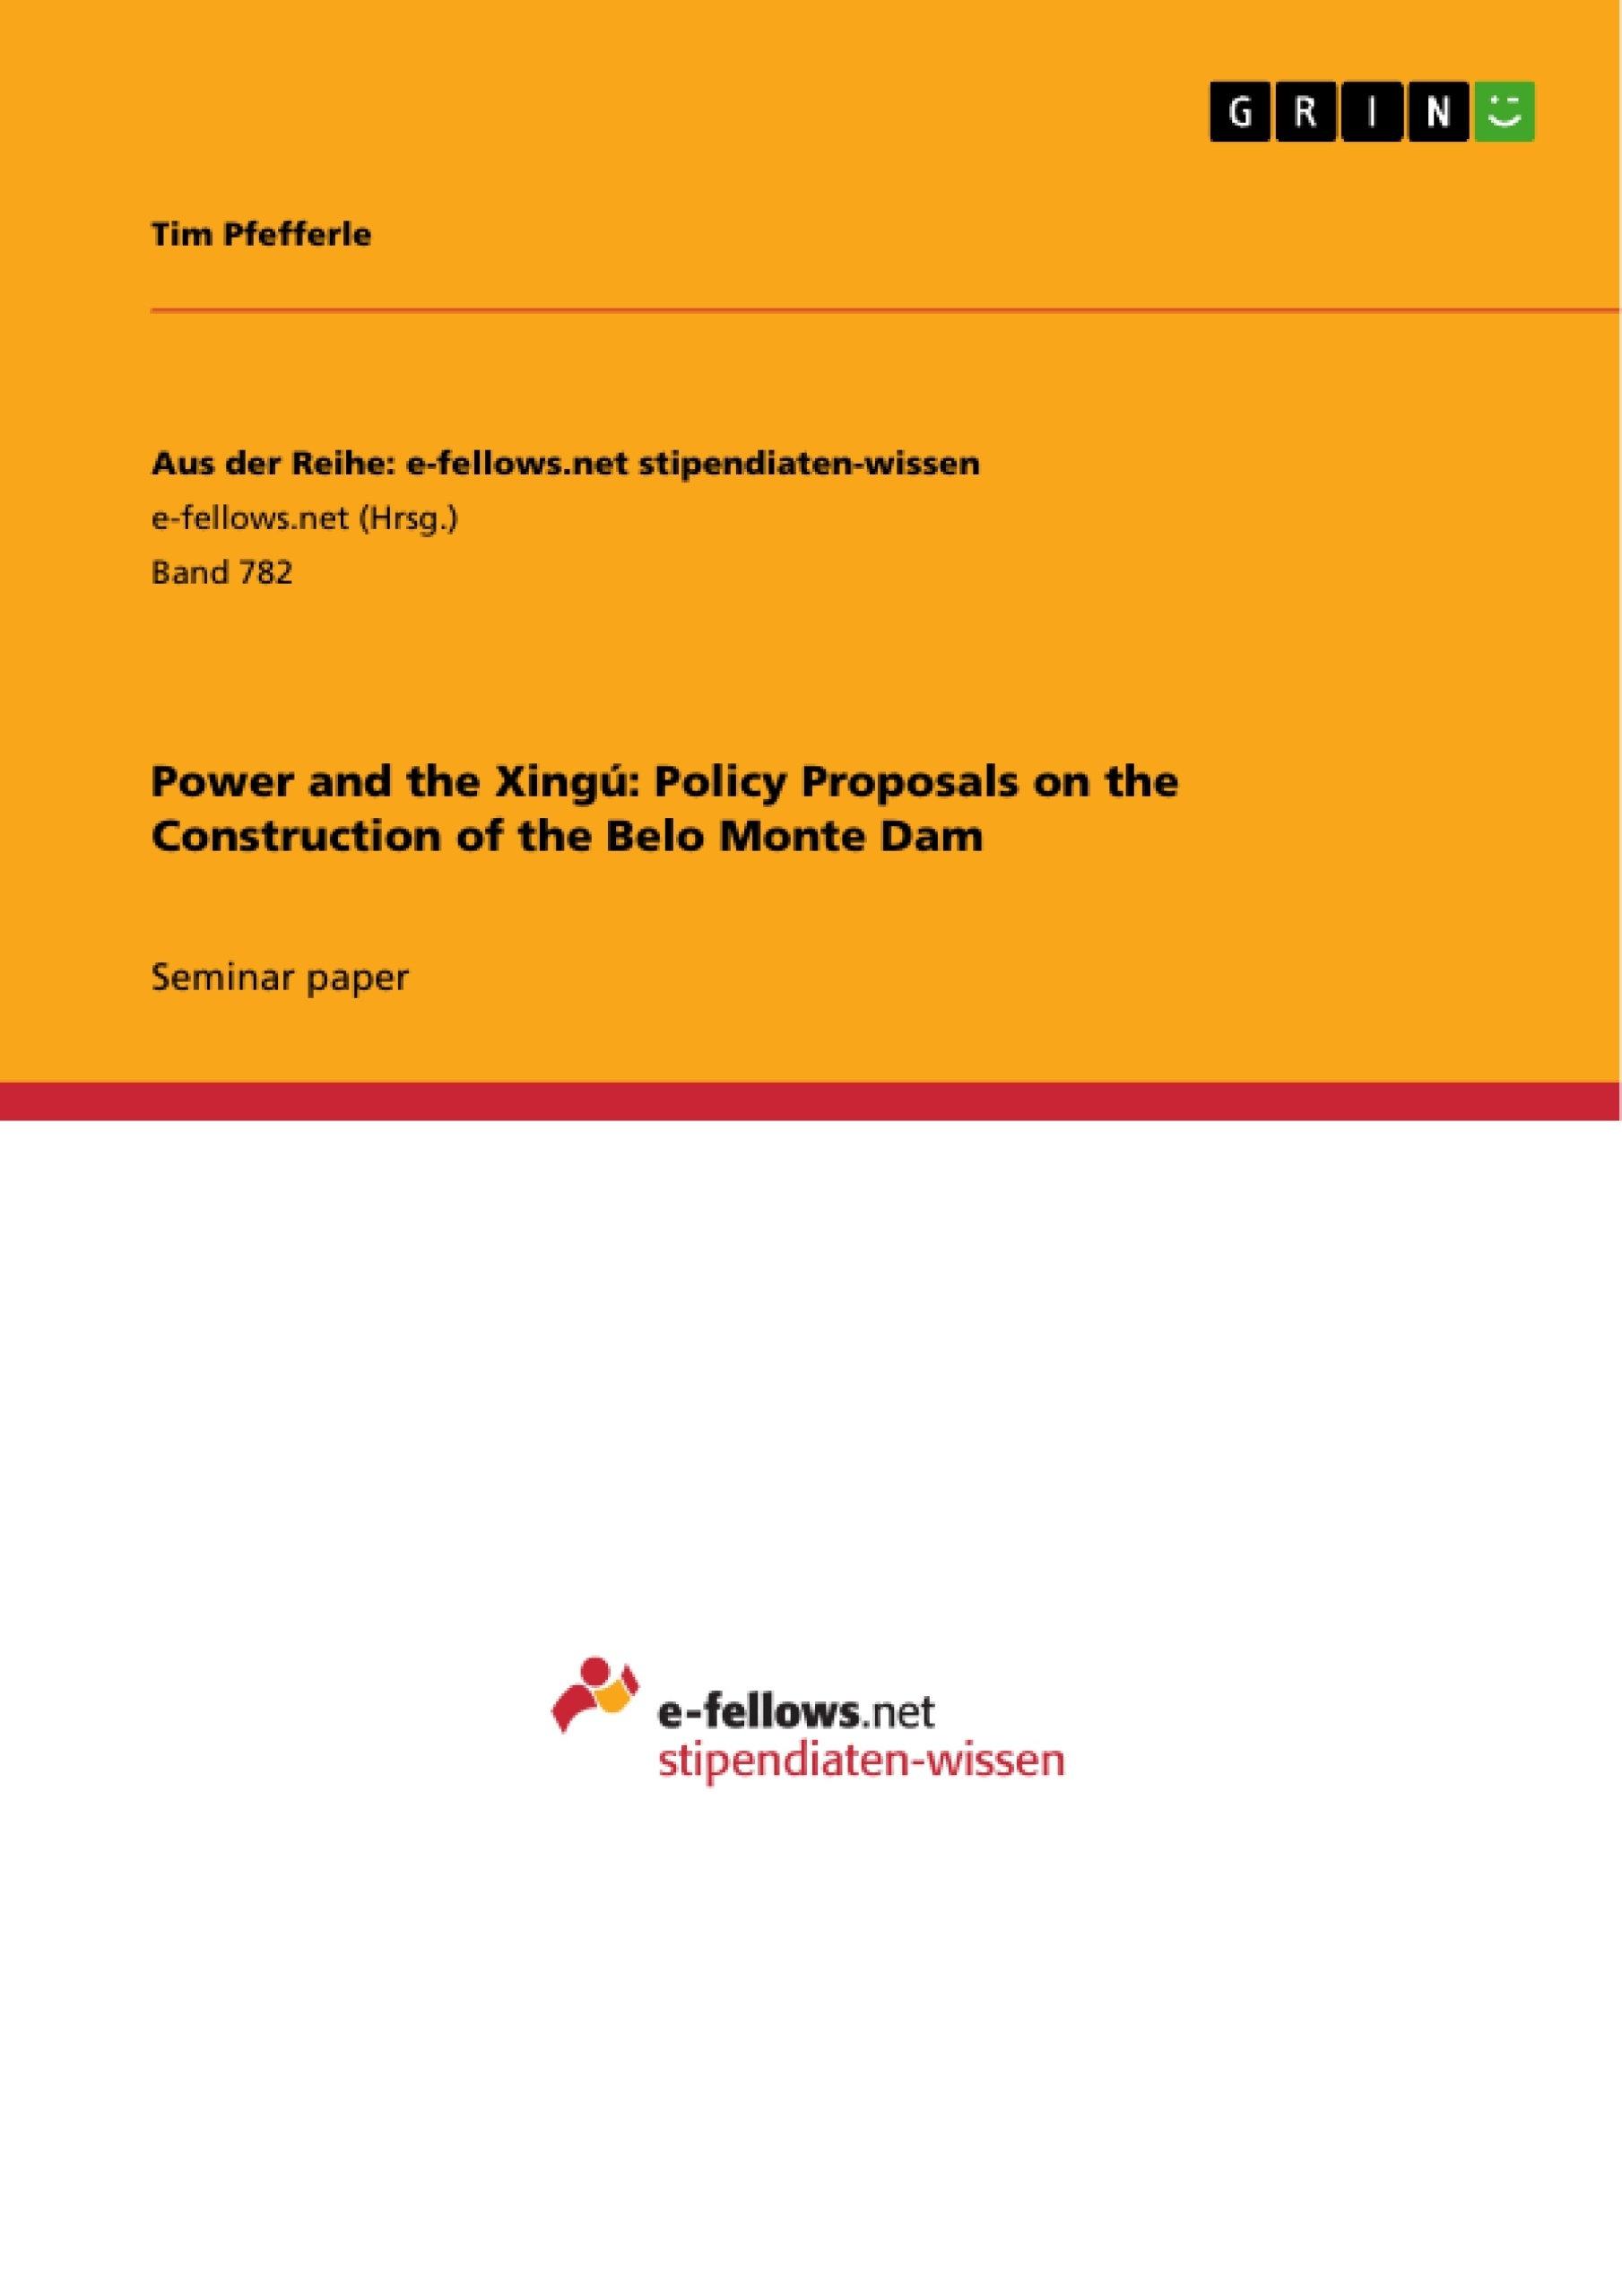 Title: Power and the Xingú: Policy Proposals on the Construction of the Belo Monte Dam